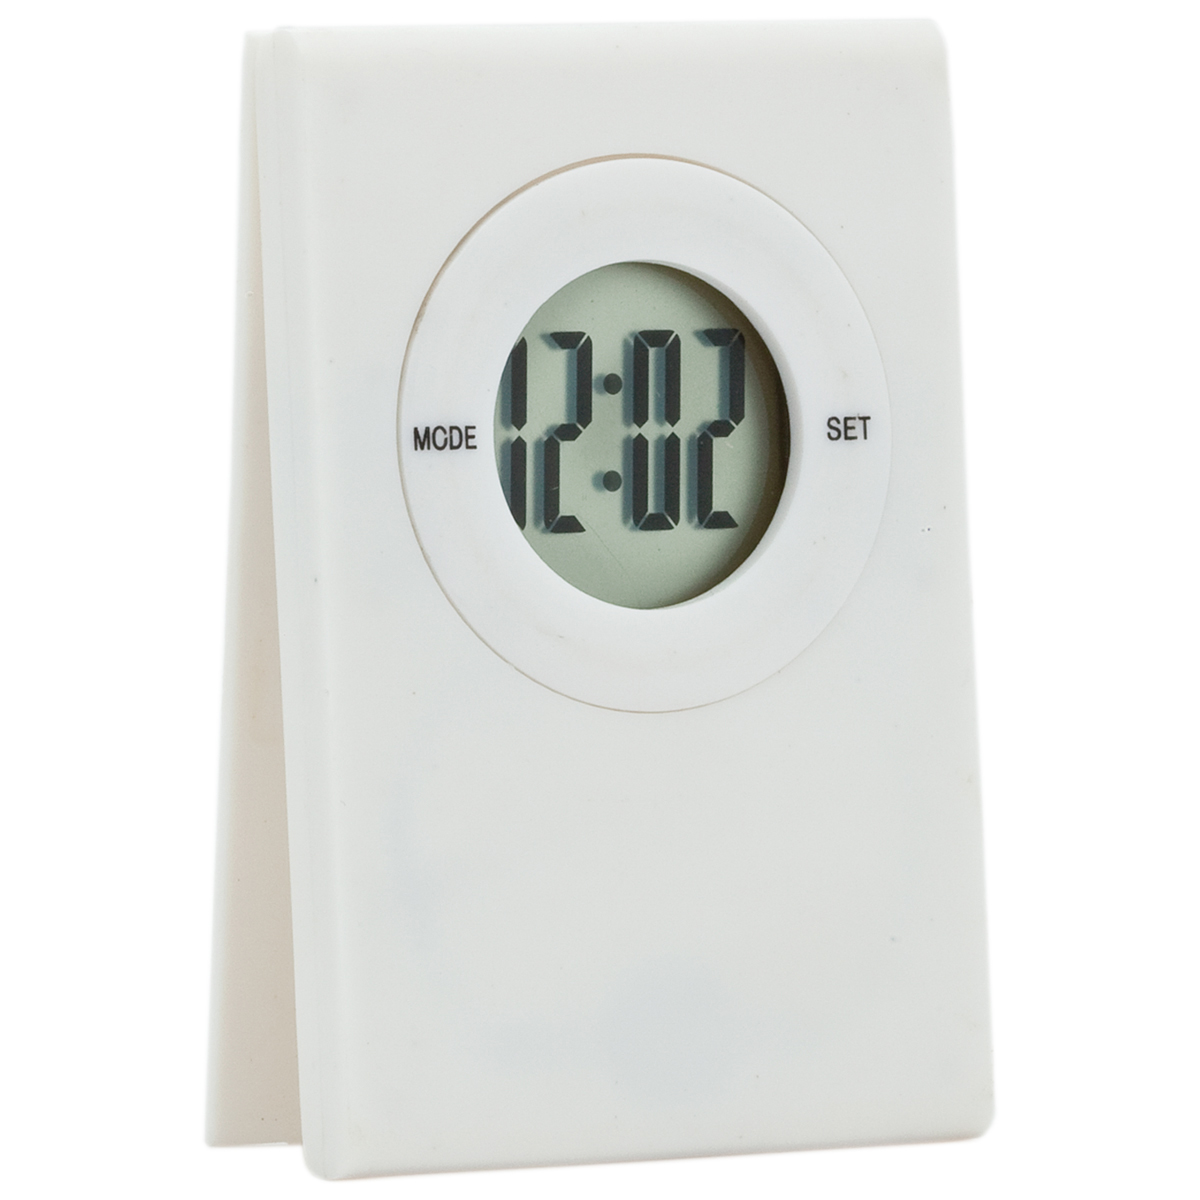 Table Clock 055 - hmi35055-02 (White)